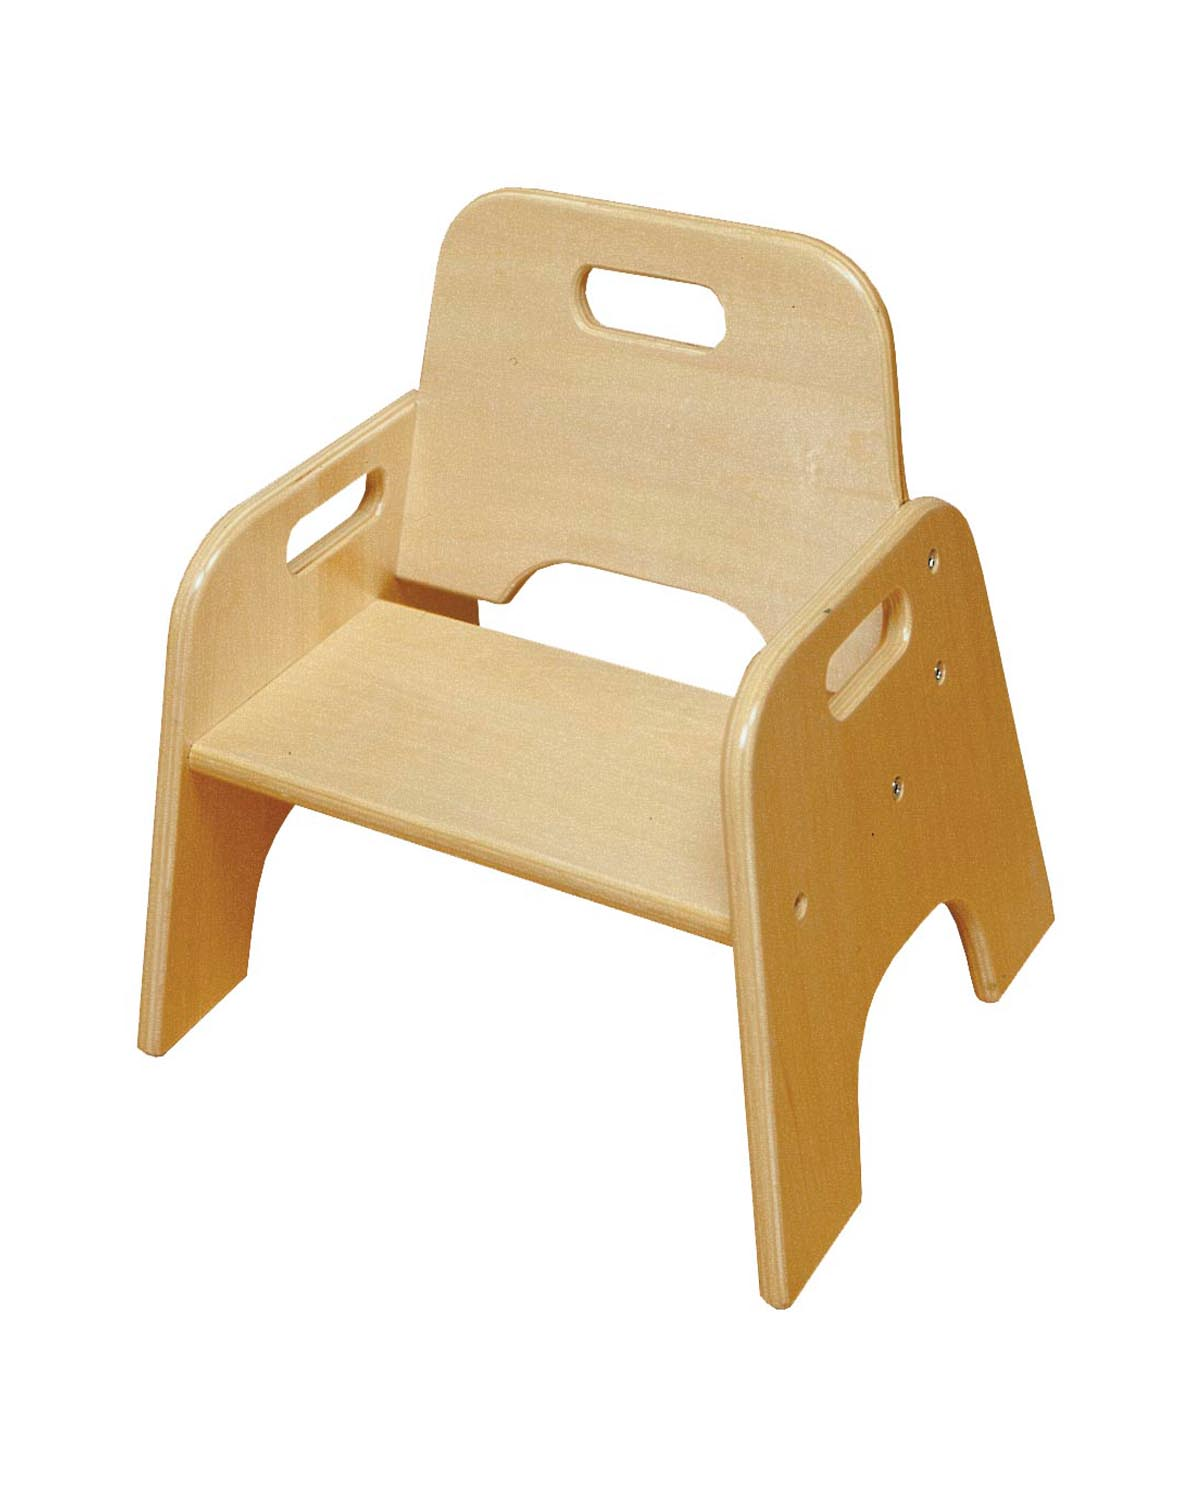 Ecr4kids stackable children wooden toddler chair furniture 6 inch 2 packs ebay Wooden childrens furniture